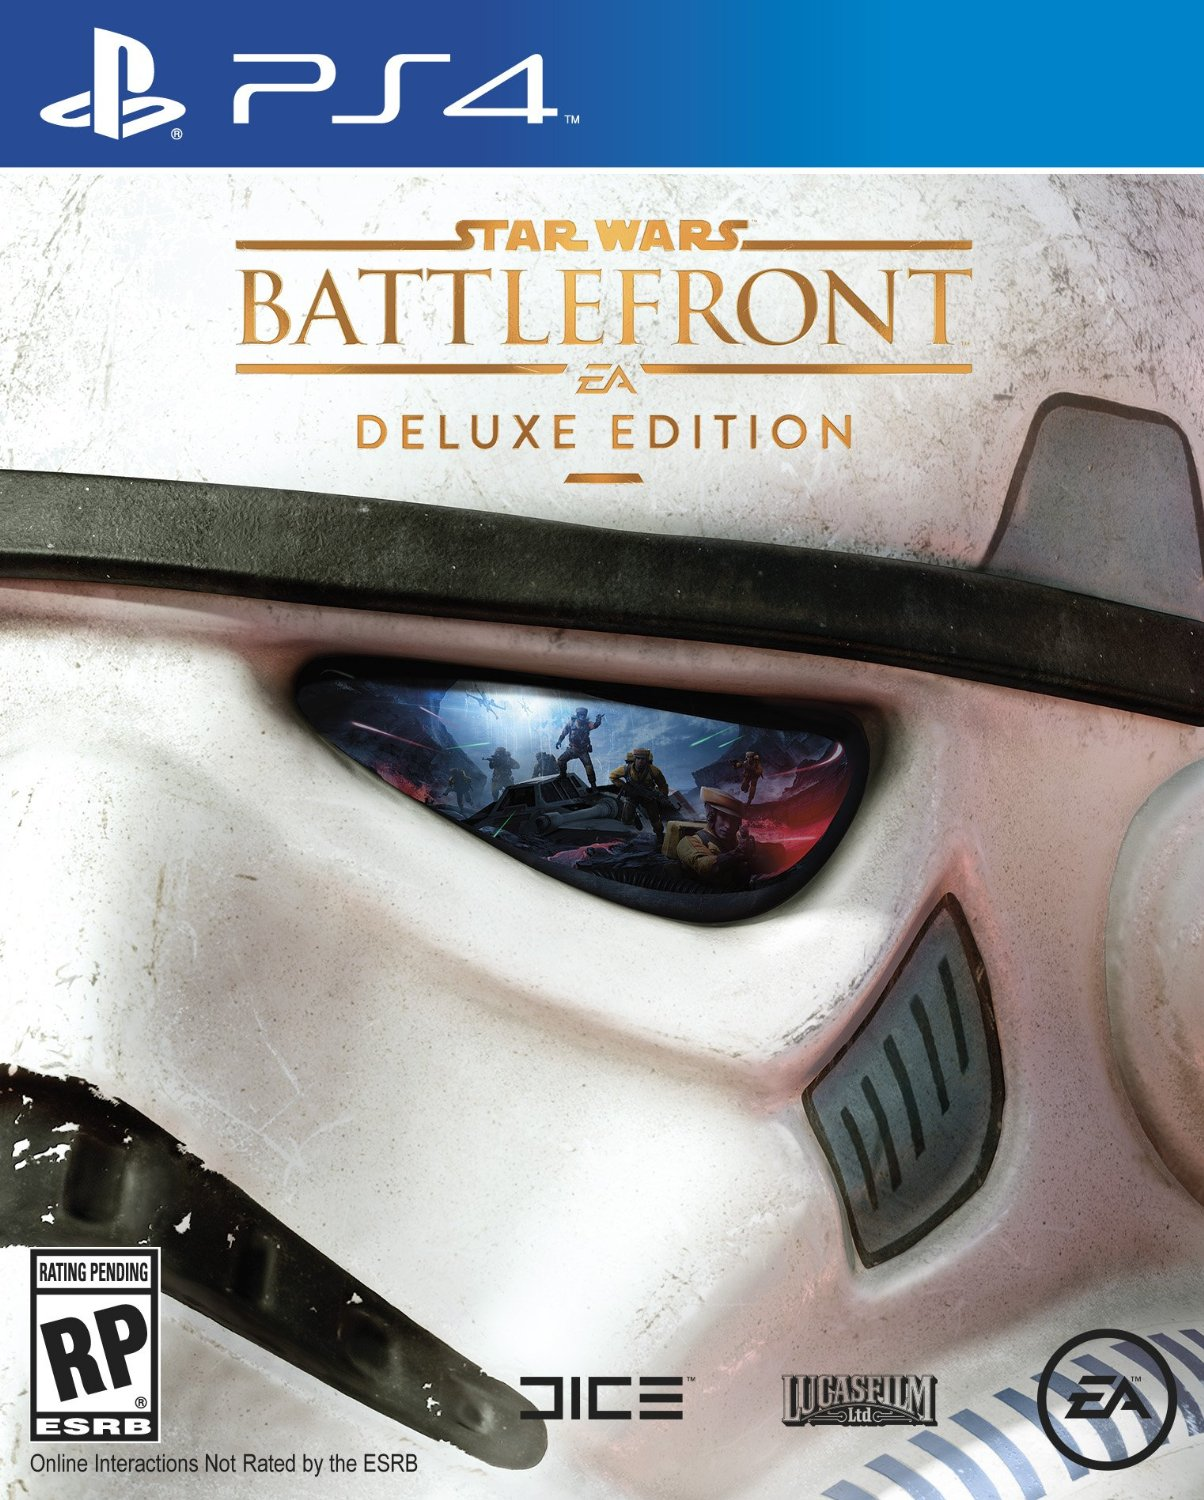 Star Wars Battlefront's Deluxe Edition has gorgeous box art and Han Solo's blaster